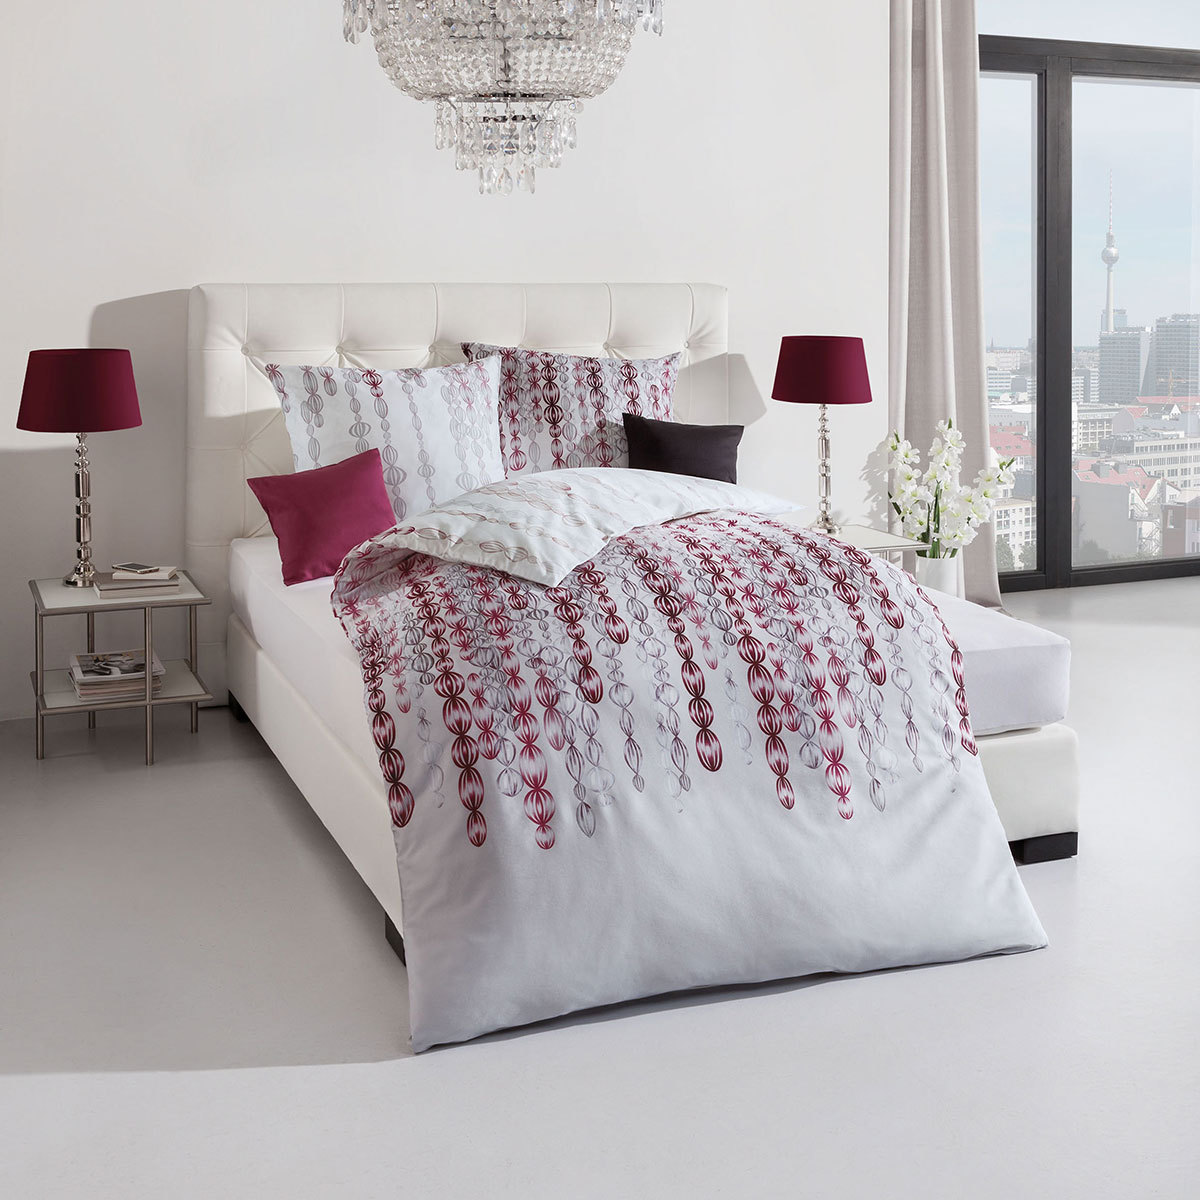 kaeppel biber bettw sche pearls burgund g nstig online kaufen bei bettwaren shop. Black Bedroom Furniture Sets. Home Design Ideas